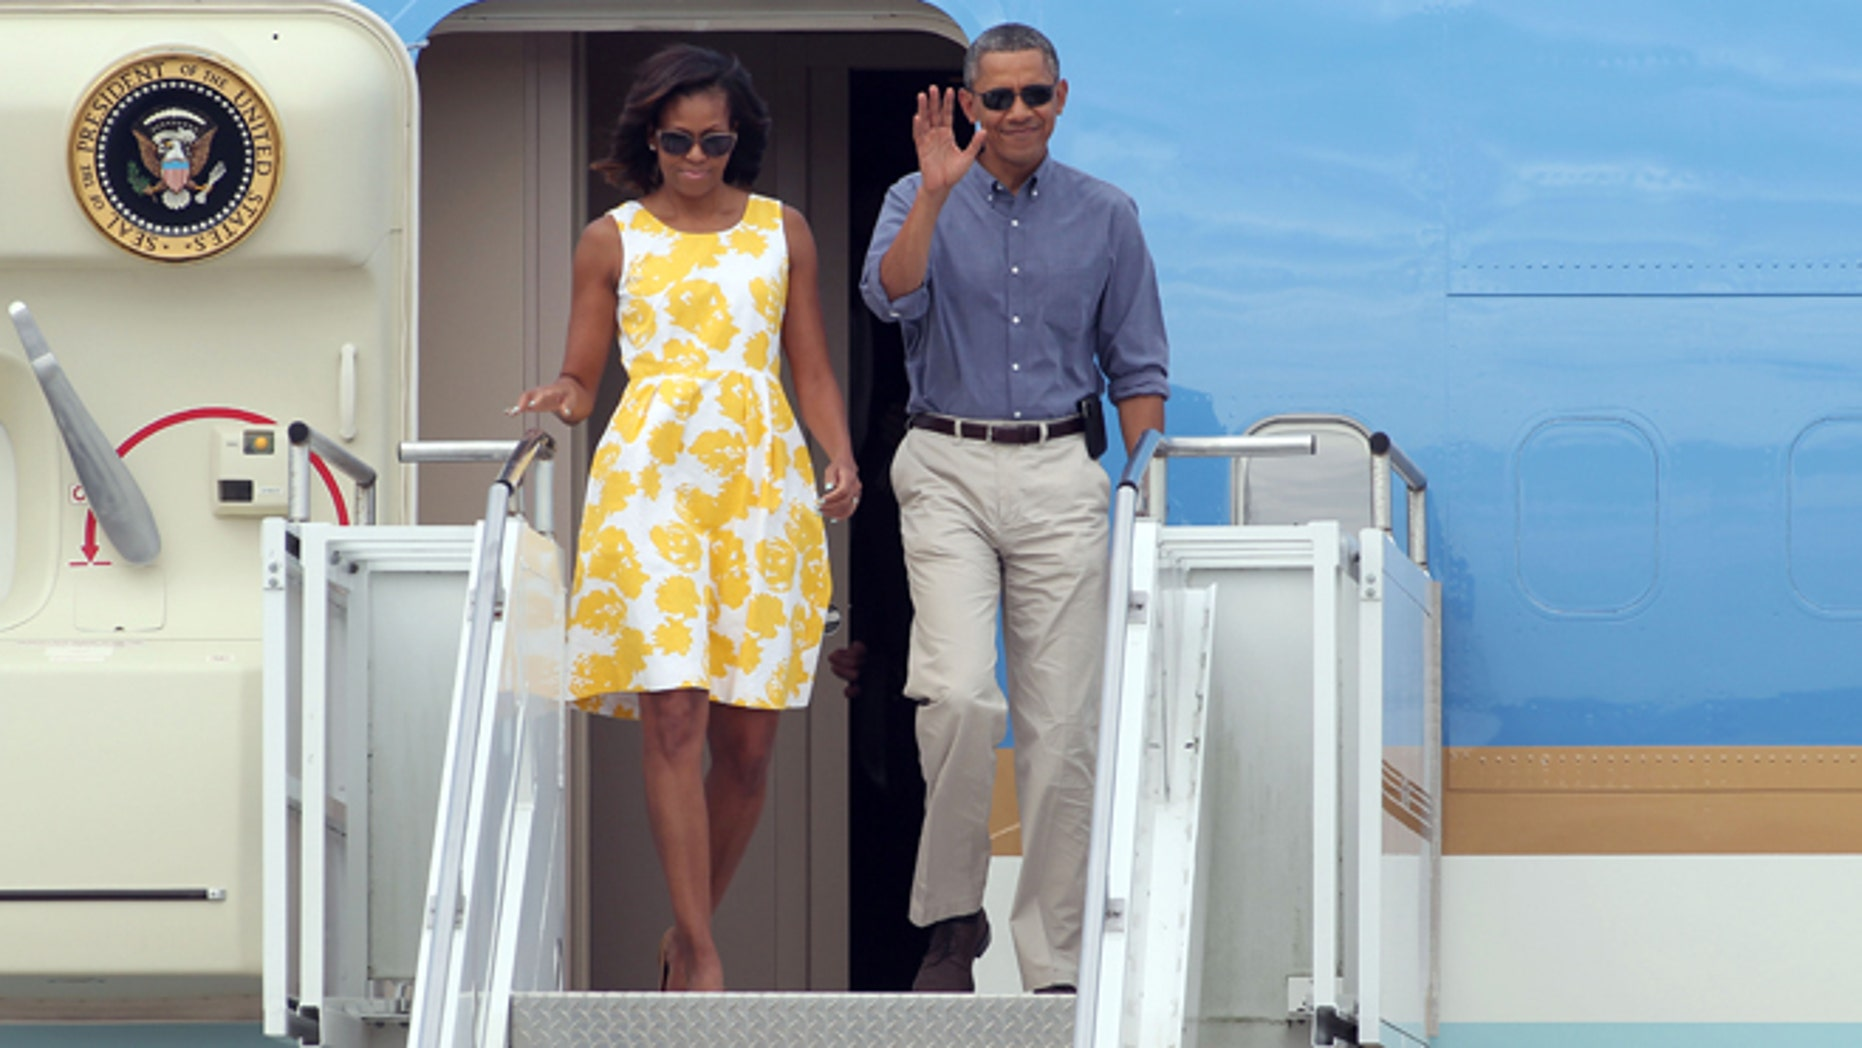 Aug 10, 2013: President Barack Obama and first lady Michelle Obama arrive at the Cape Cod Coast Guard Station in Bourne, Mass.,en route to a family vacation on Martha's Vineyard.